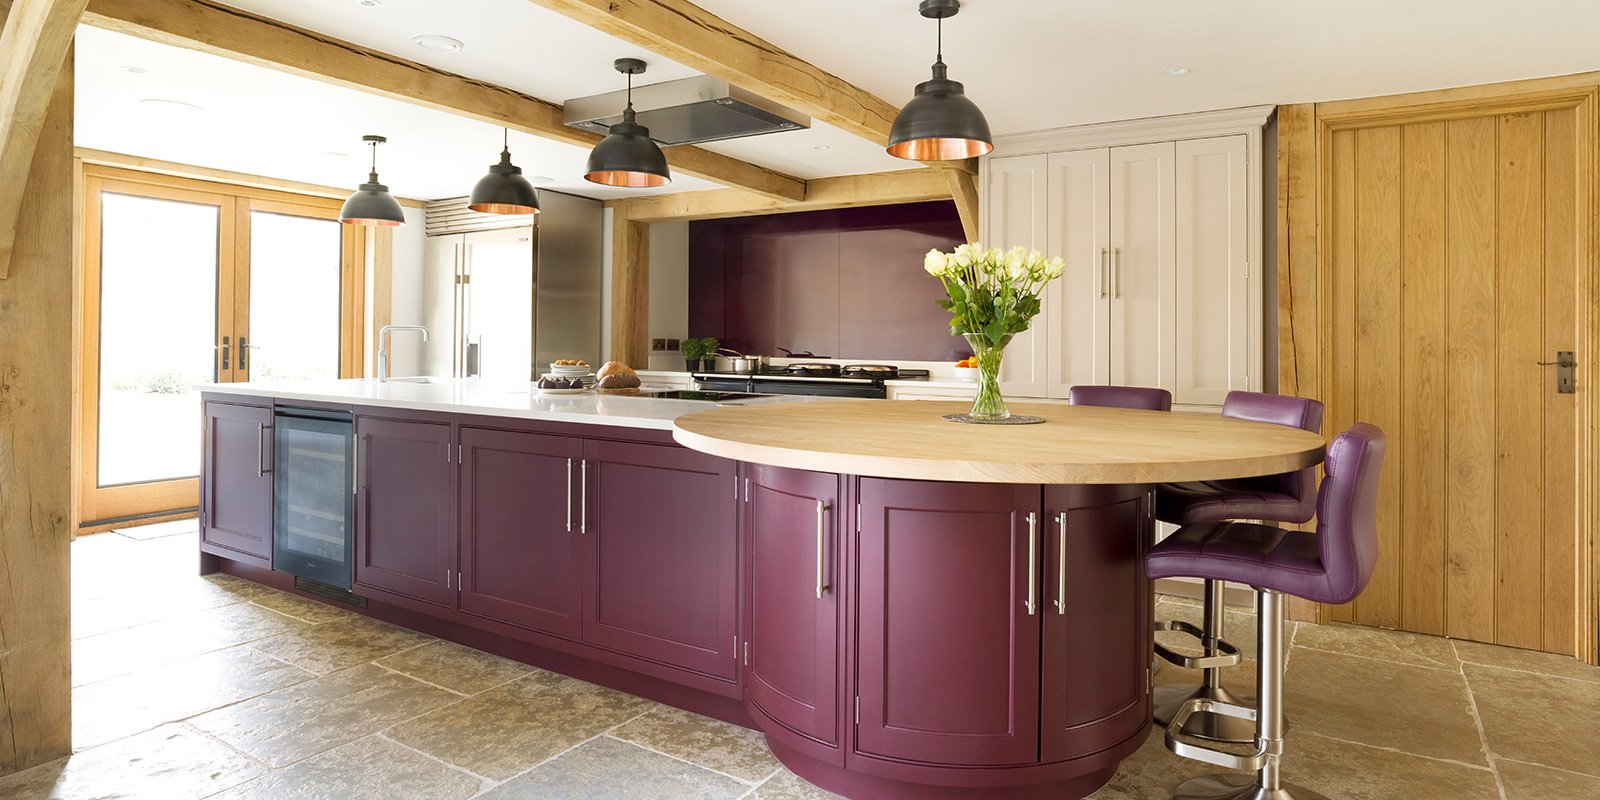 new kitchen in a welsh oak framed timbered house